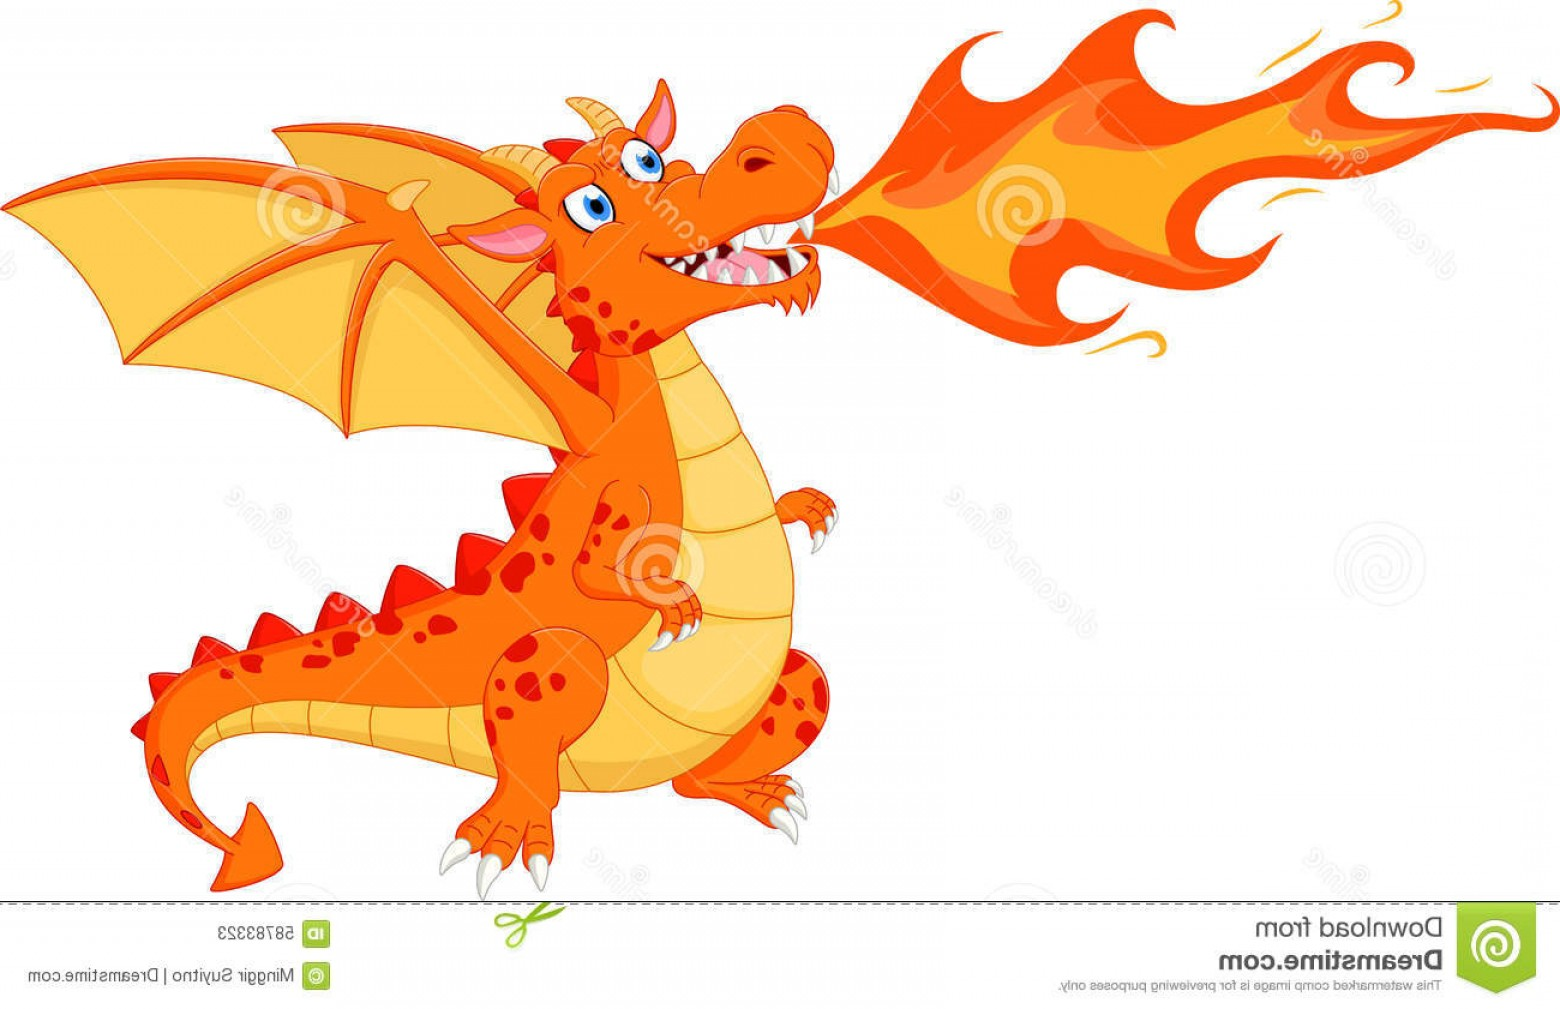 Dragon Fire Vector: Stock Illustration Angry Dragon Fire Illustration Isolated White Image